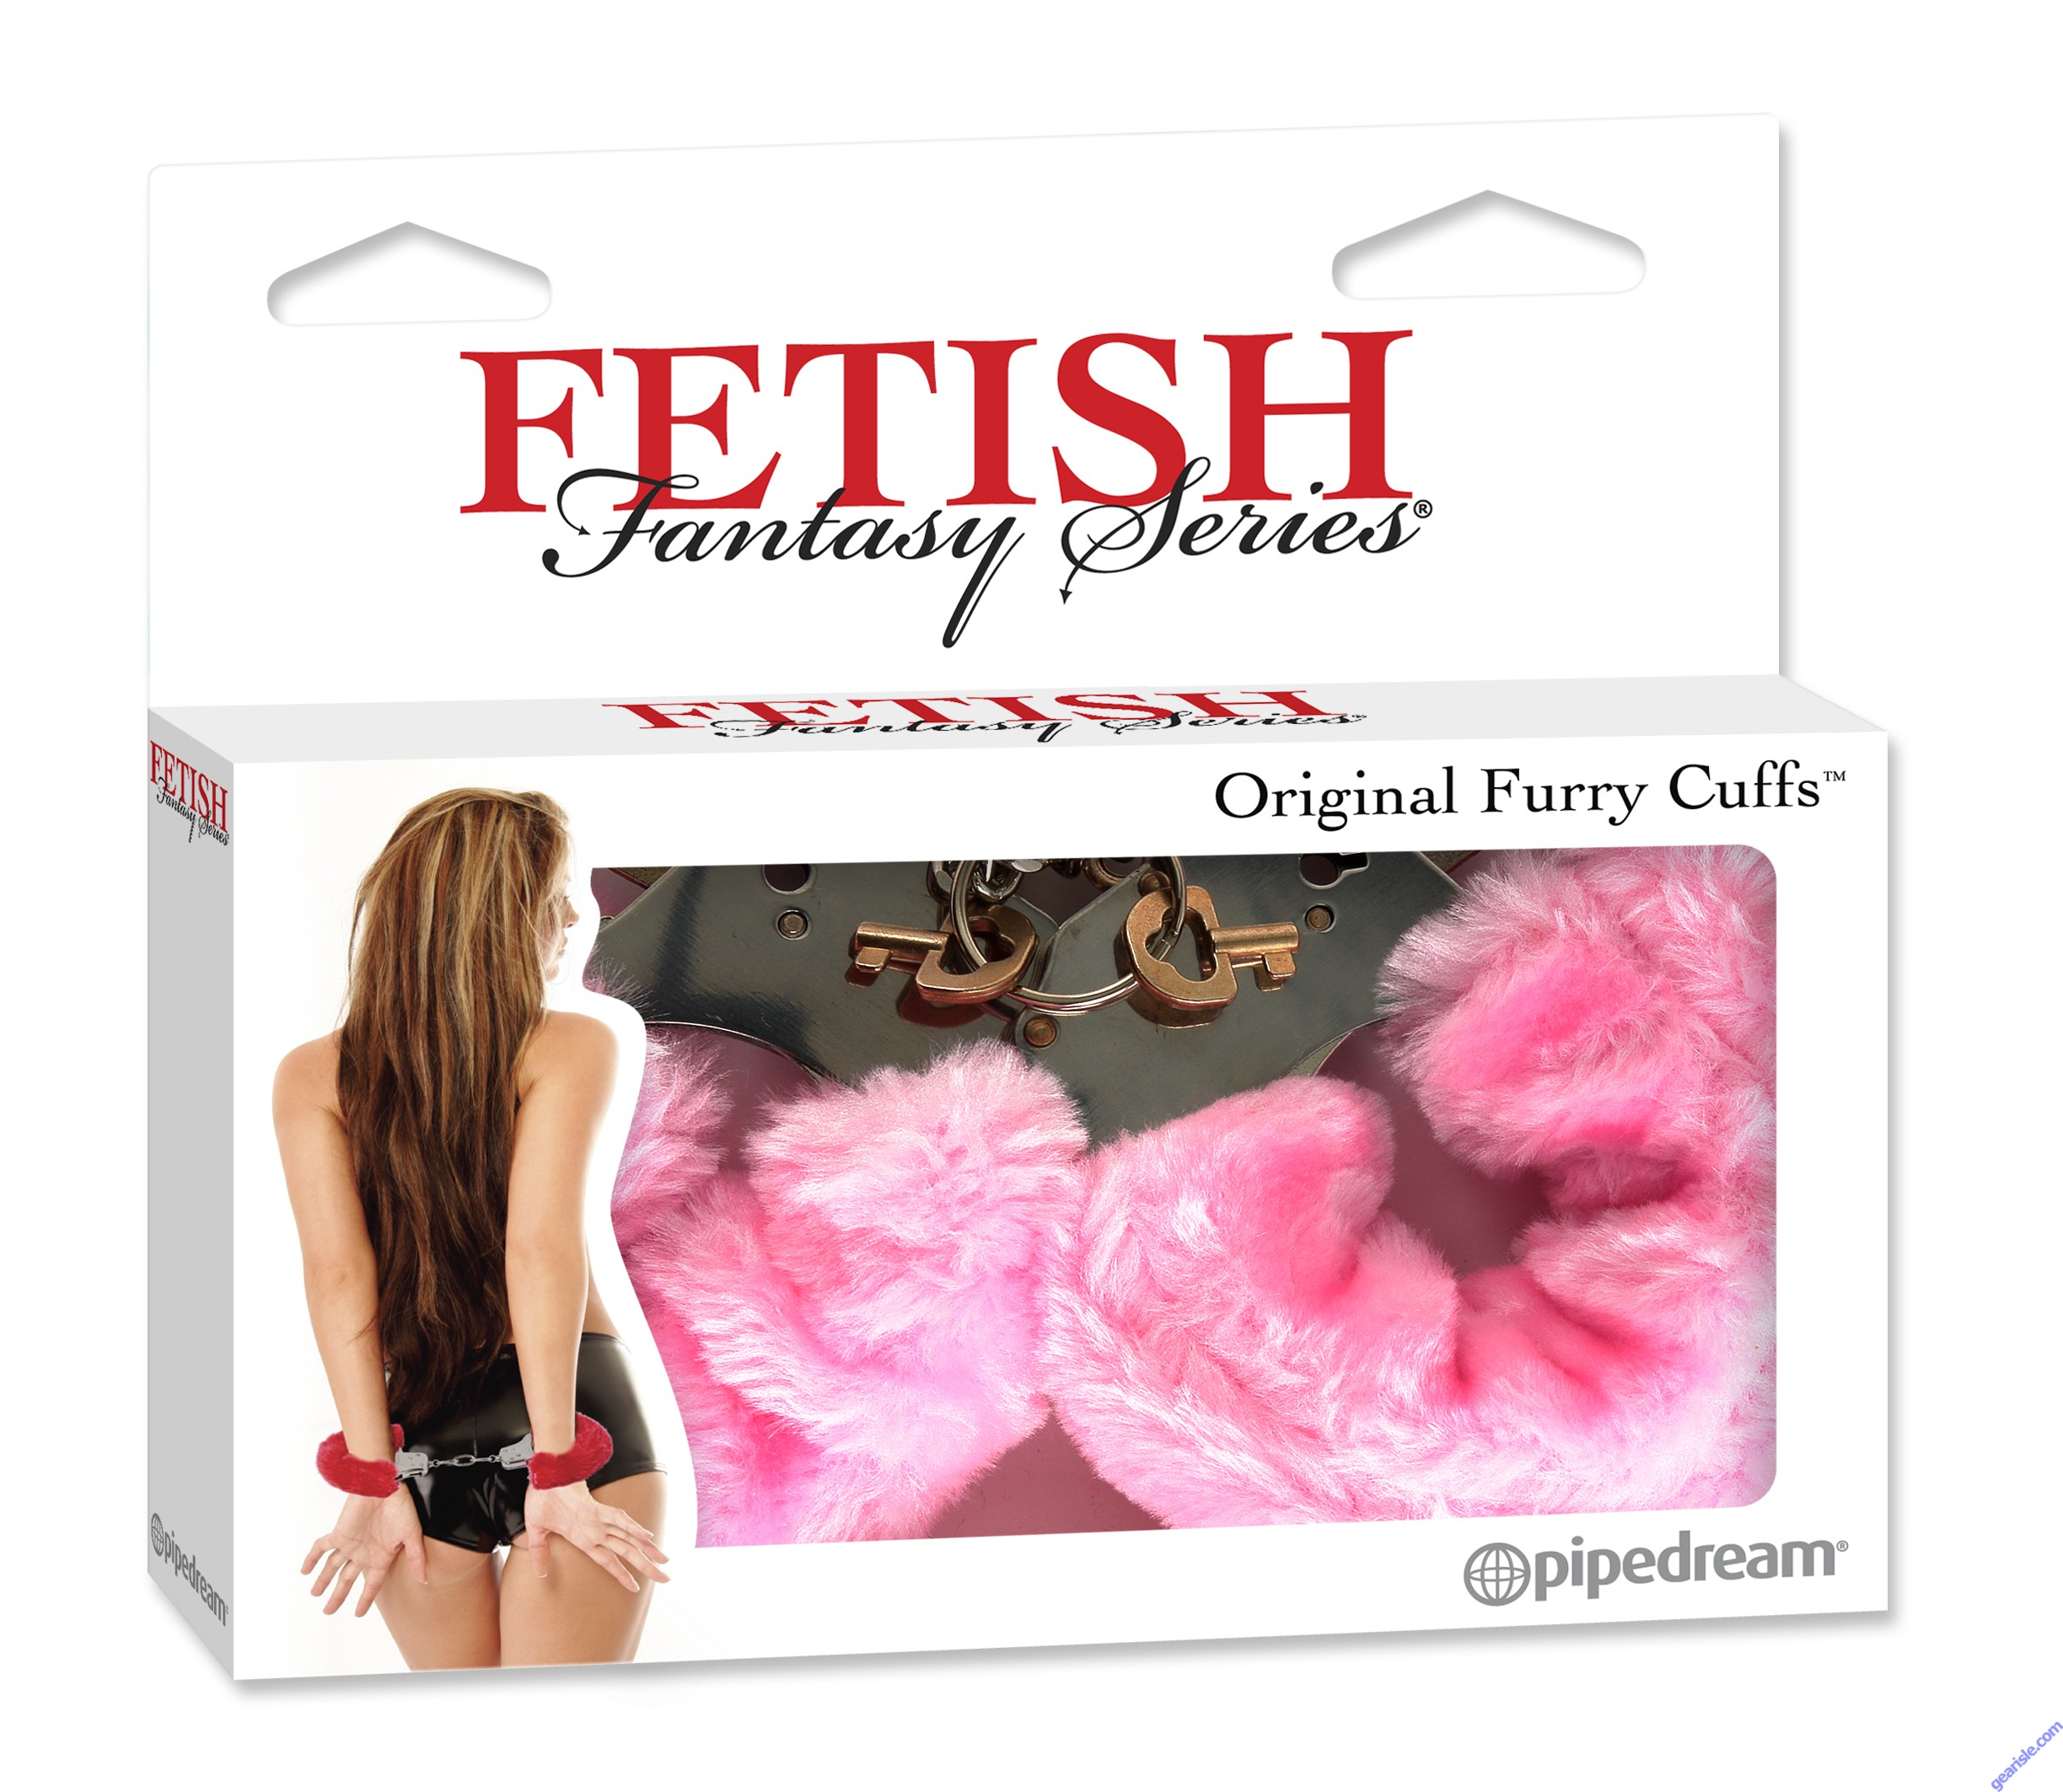 Original Furry Cuffs Pink Fetish Fantasy Series By Pipedream